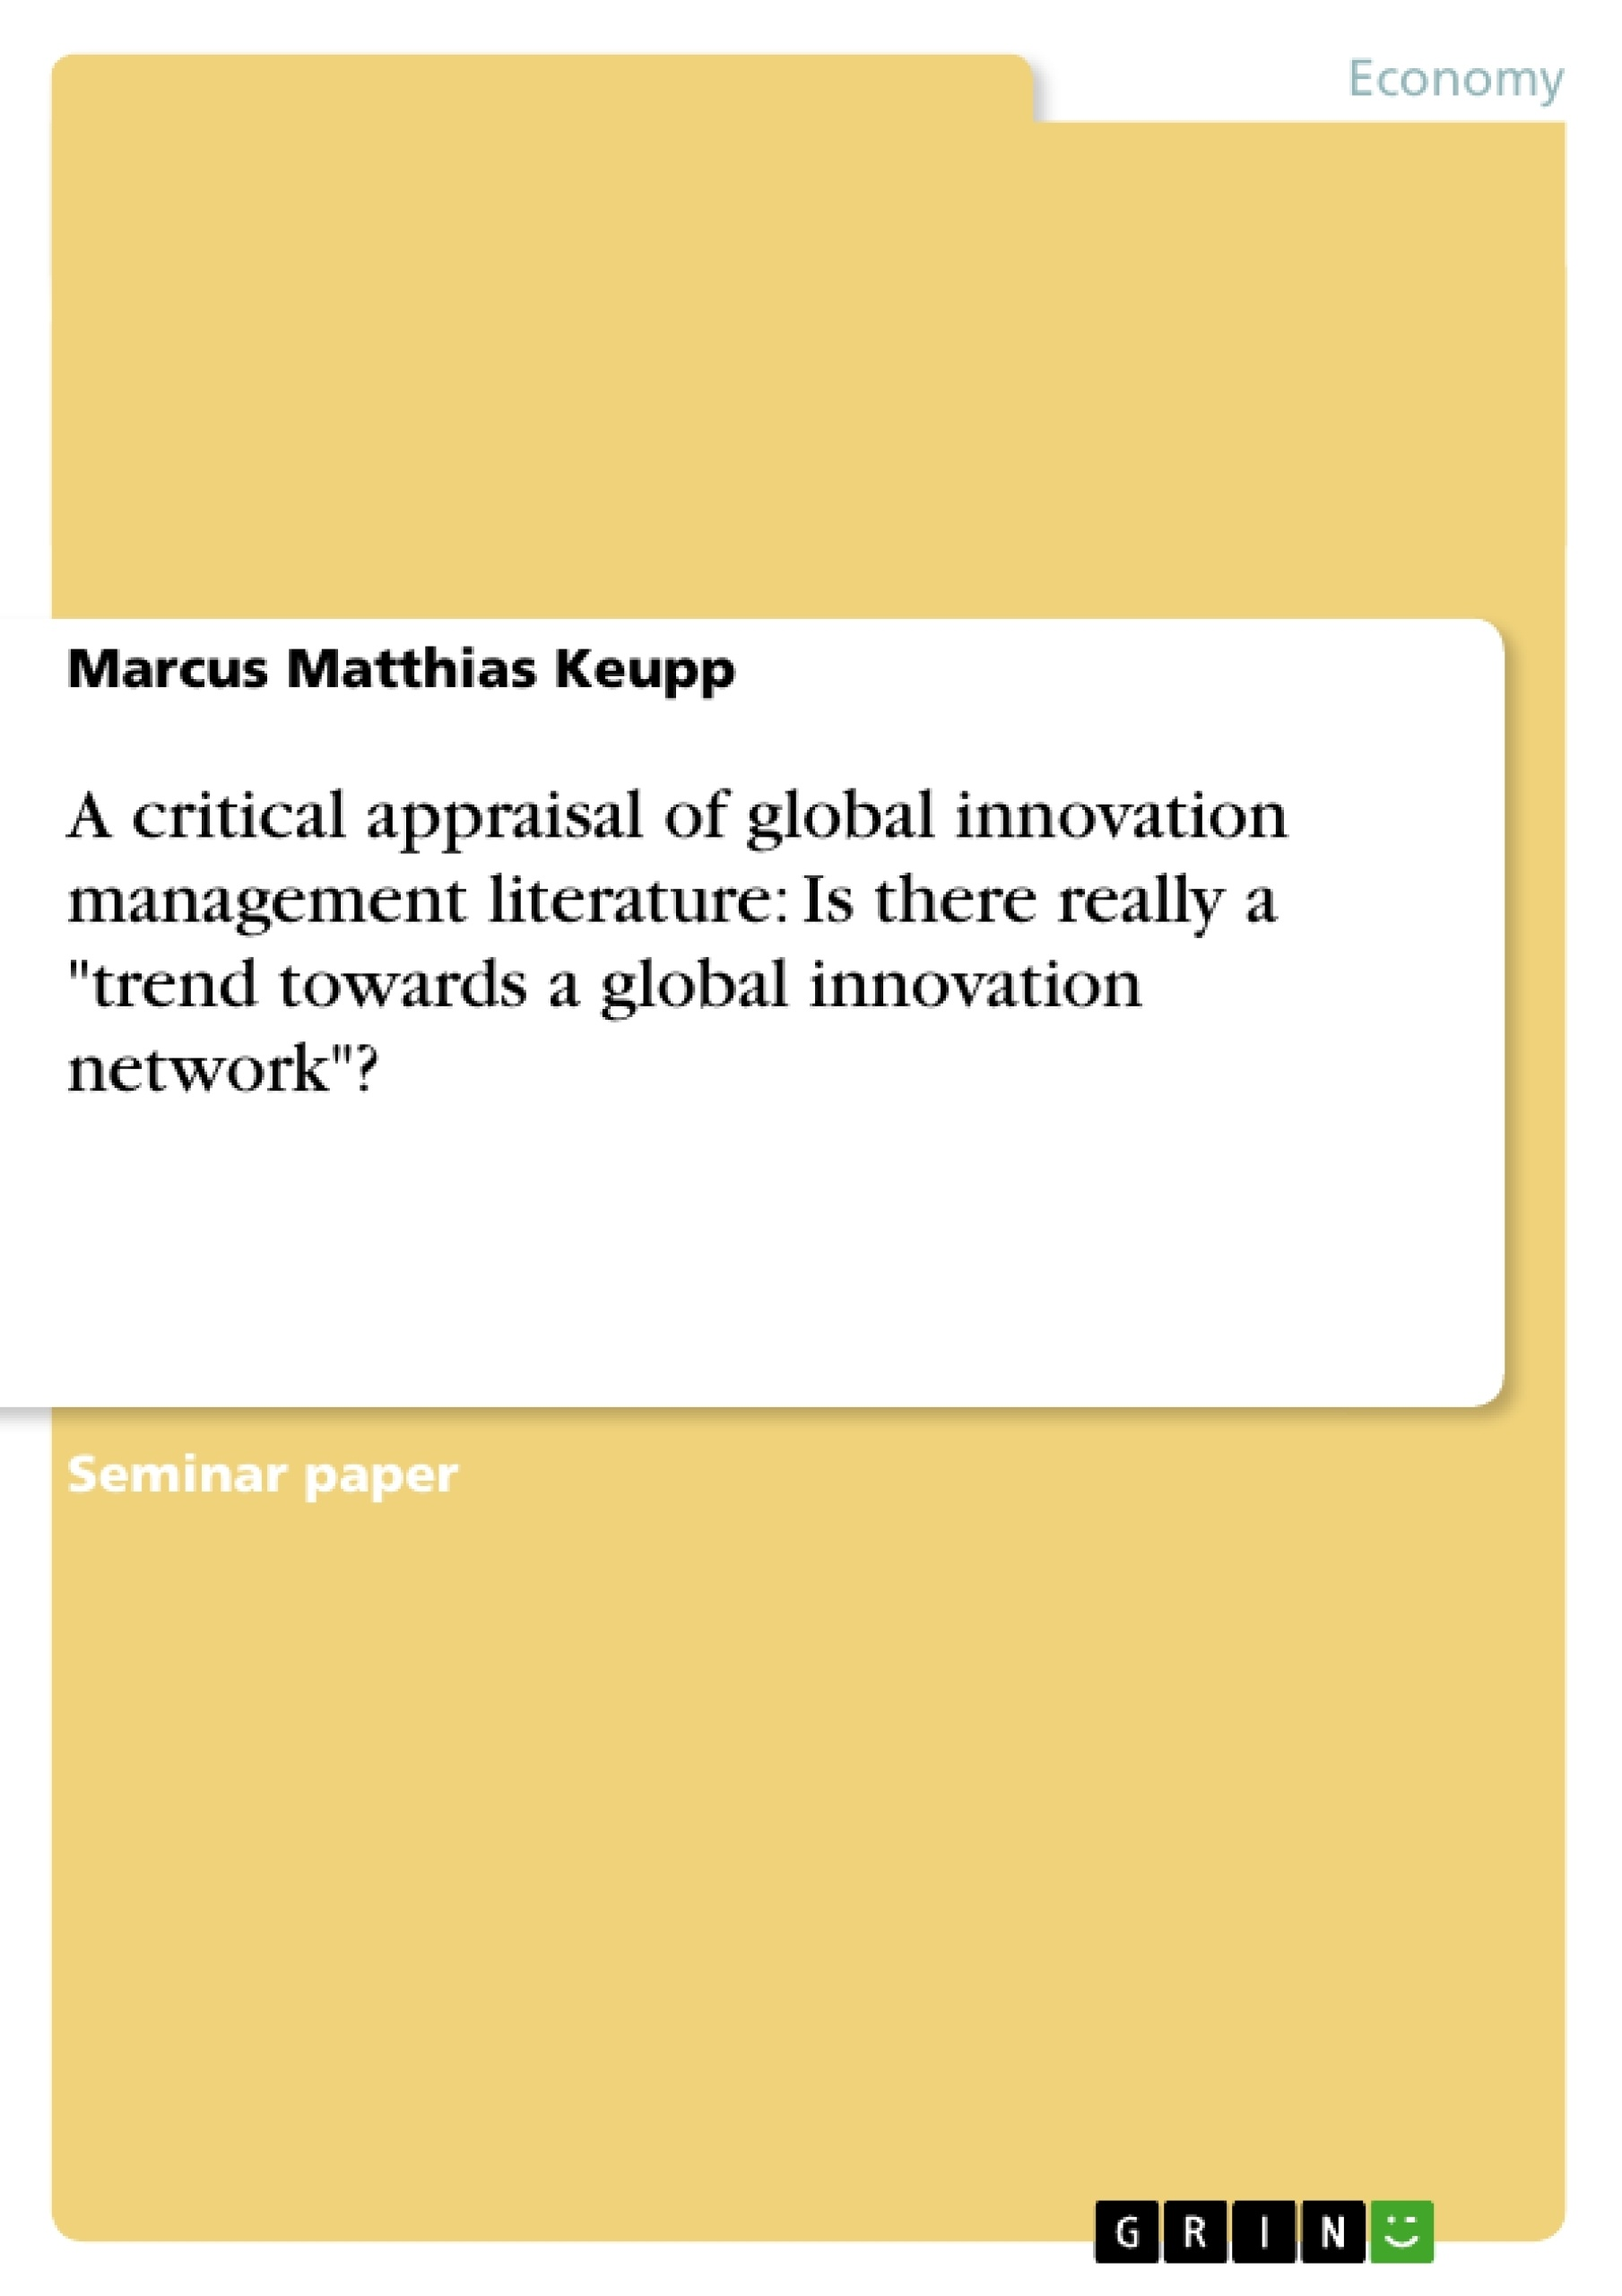 """Title: A critical appraisal of global innovation management literature: Is there really a """"trend towards a global innovation network""""?"""